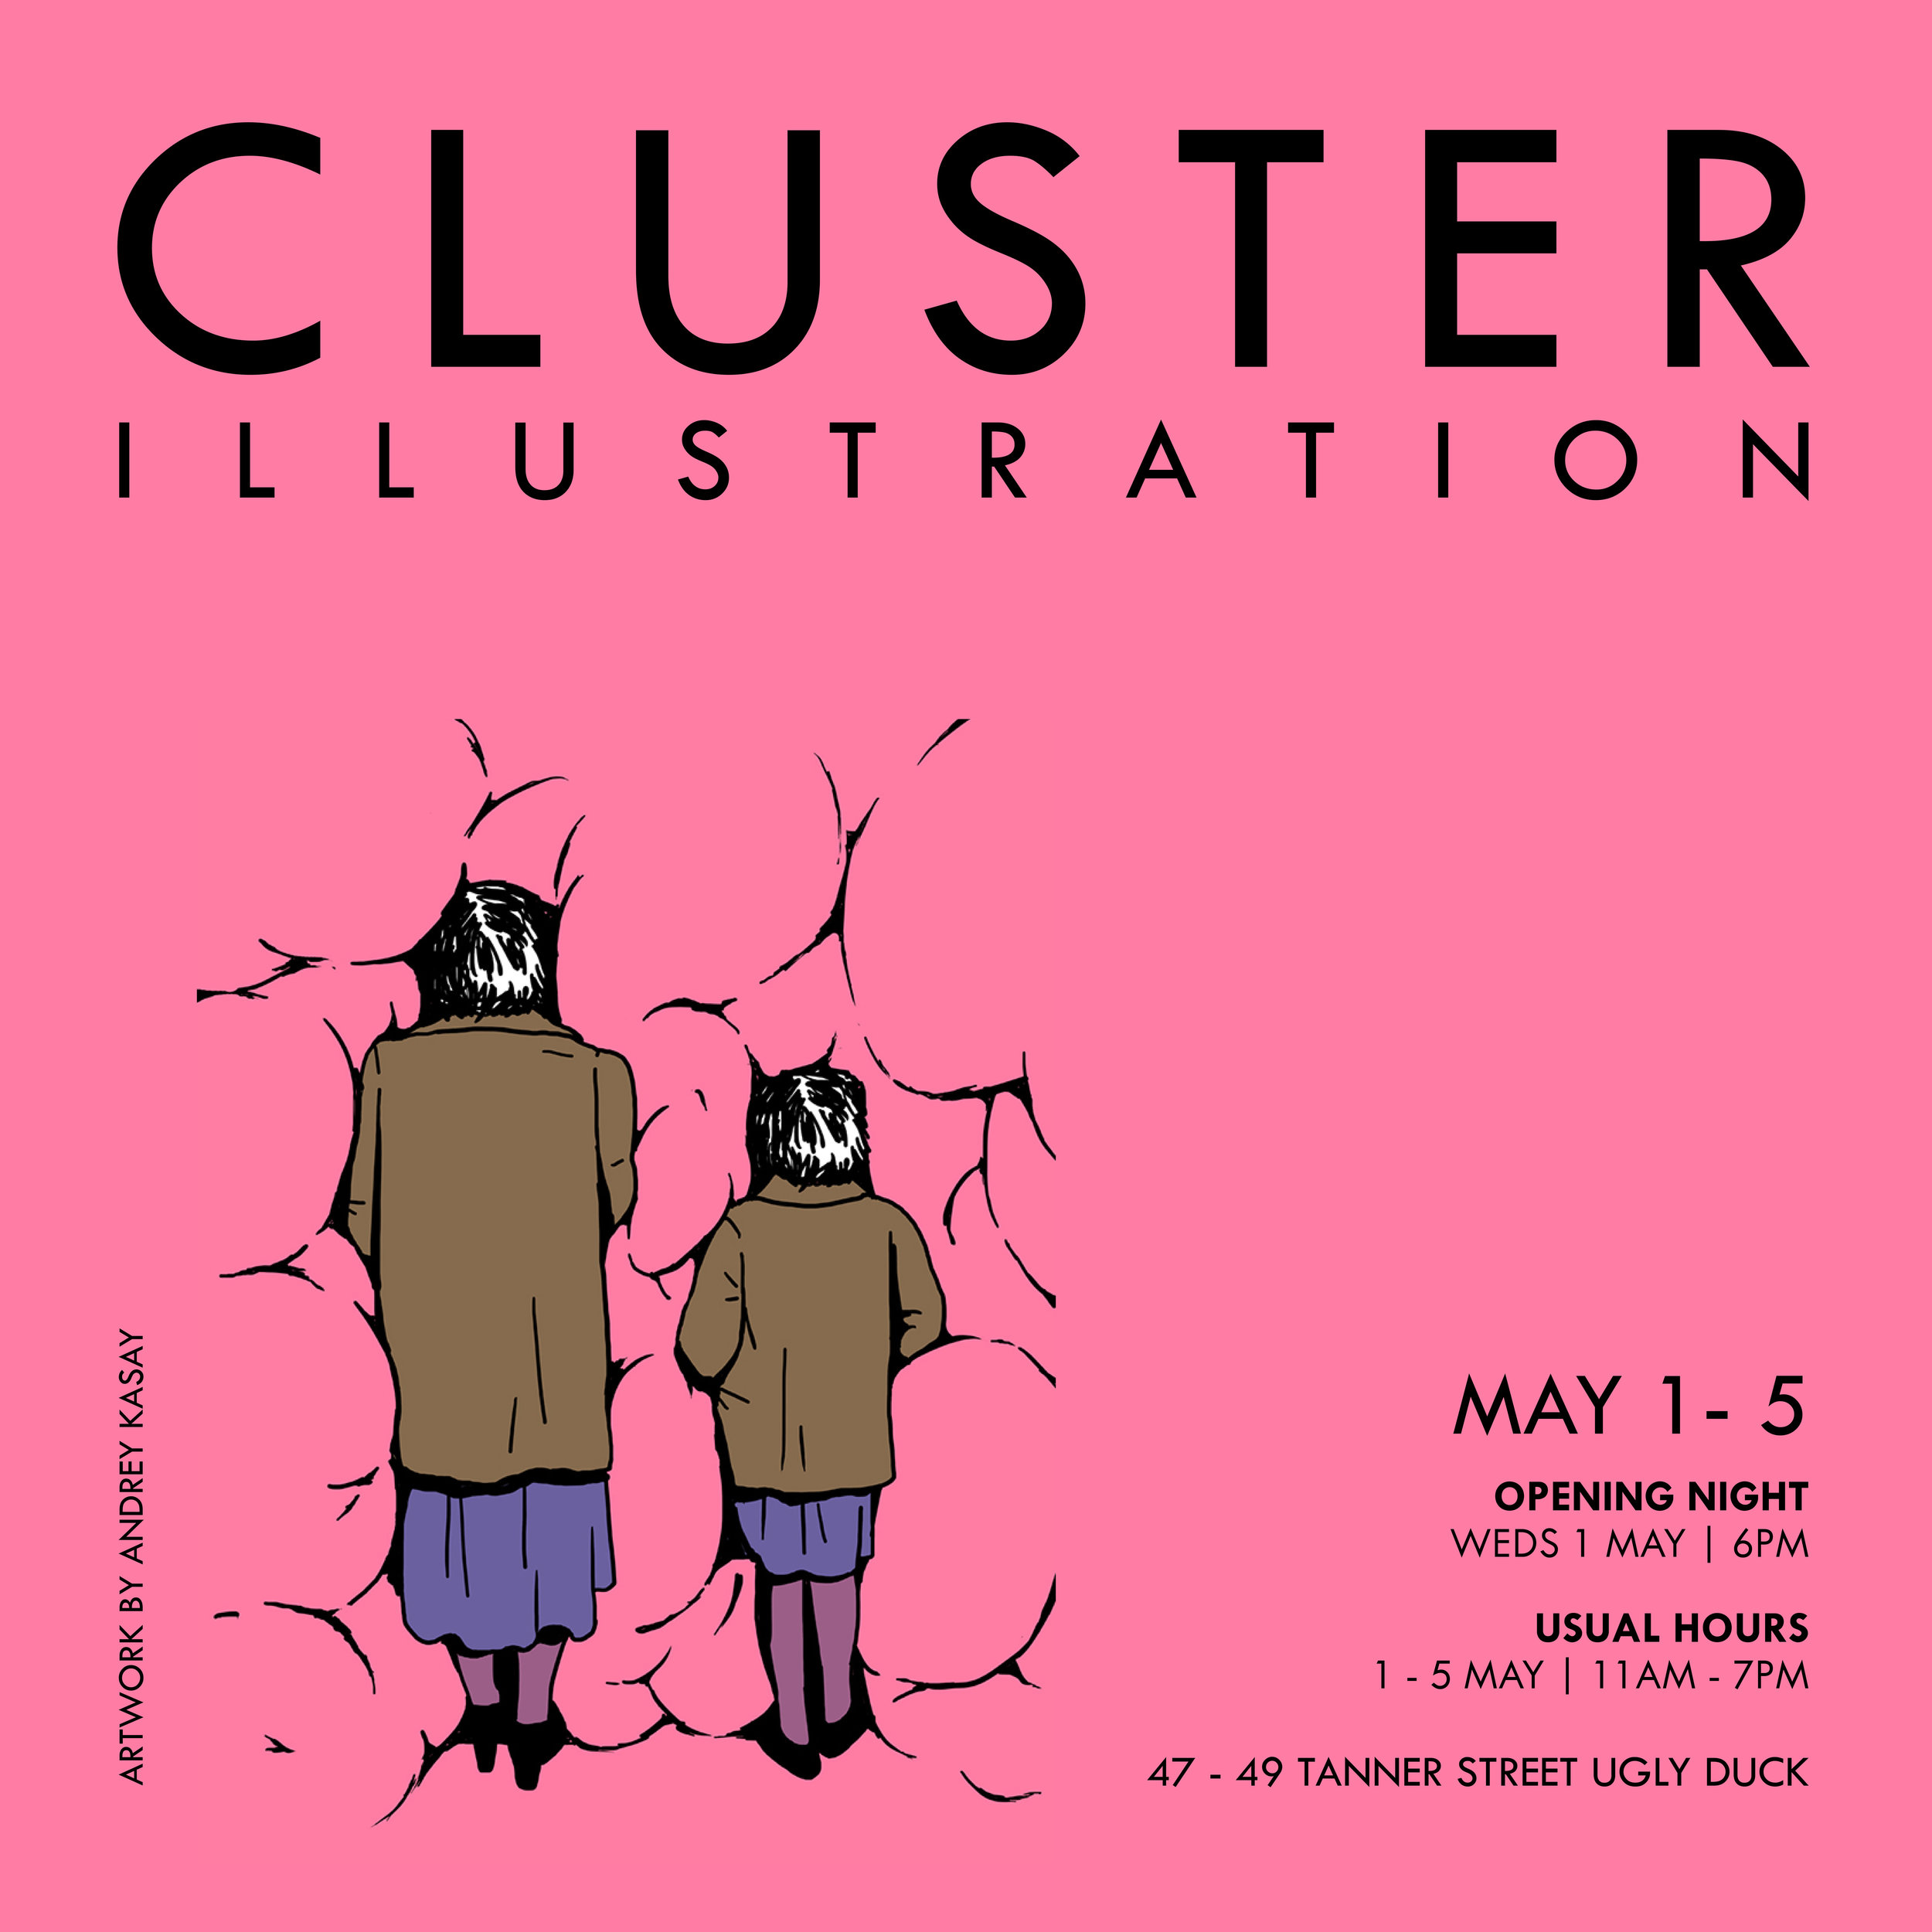 CLUSTER ILLUSTRATION MAY 2019.jpg